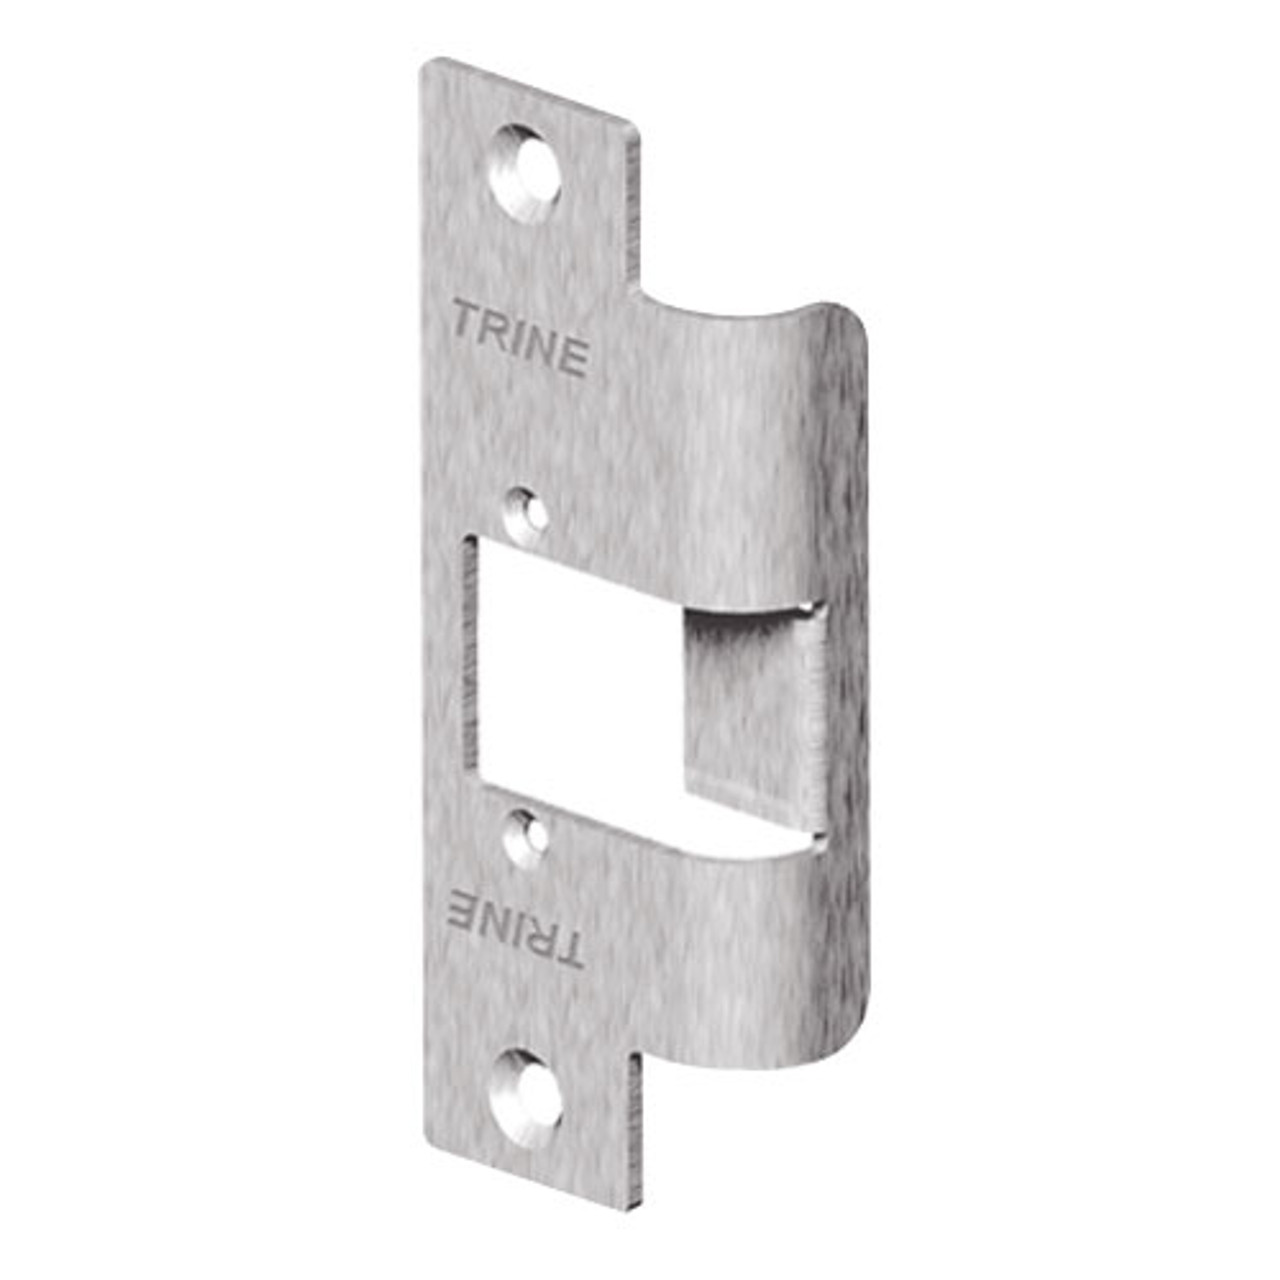 478LO-US32D Trine 3000 Series Faceplate in Satin Stainless Steel Finish